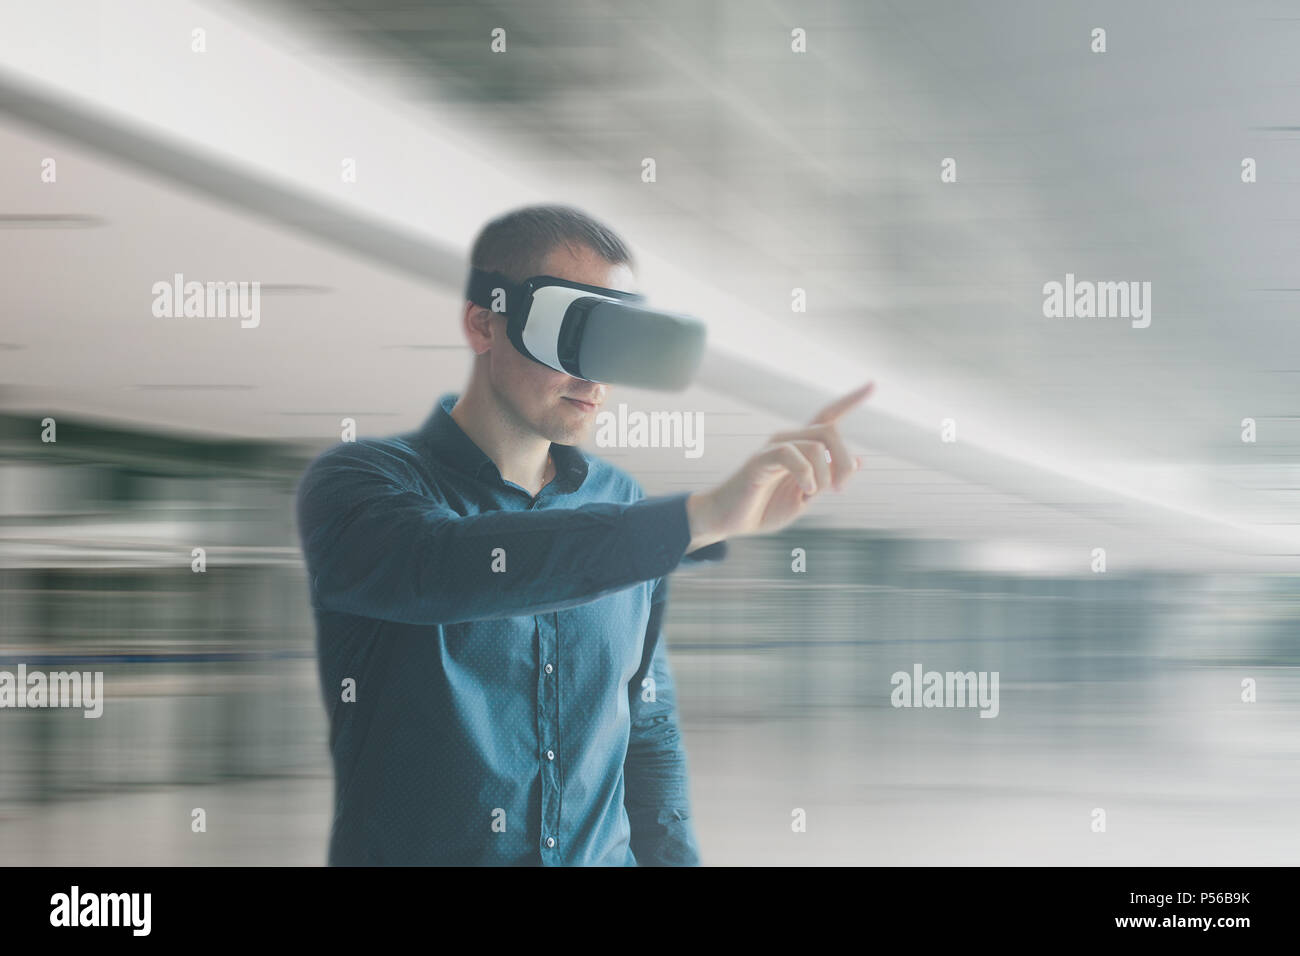 A man in virtual reality glasses. Technology of the present and the future - Stock Image